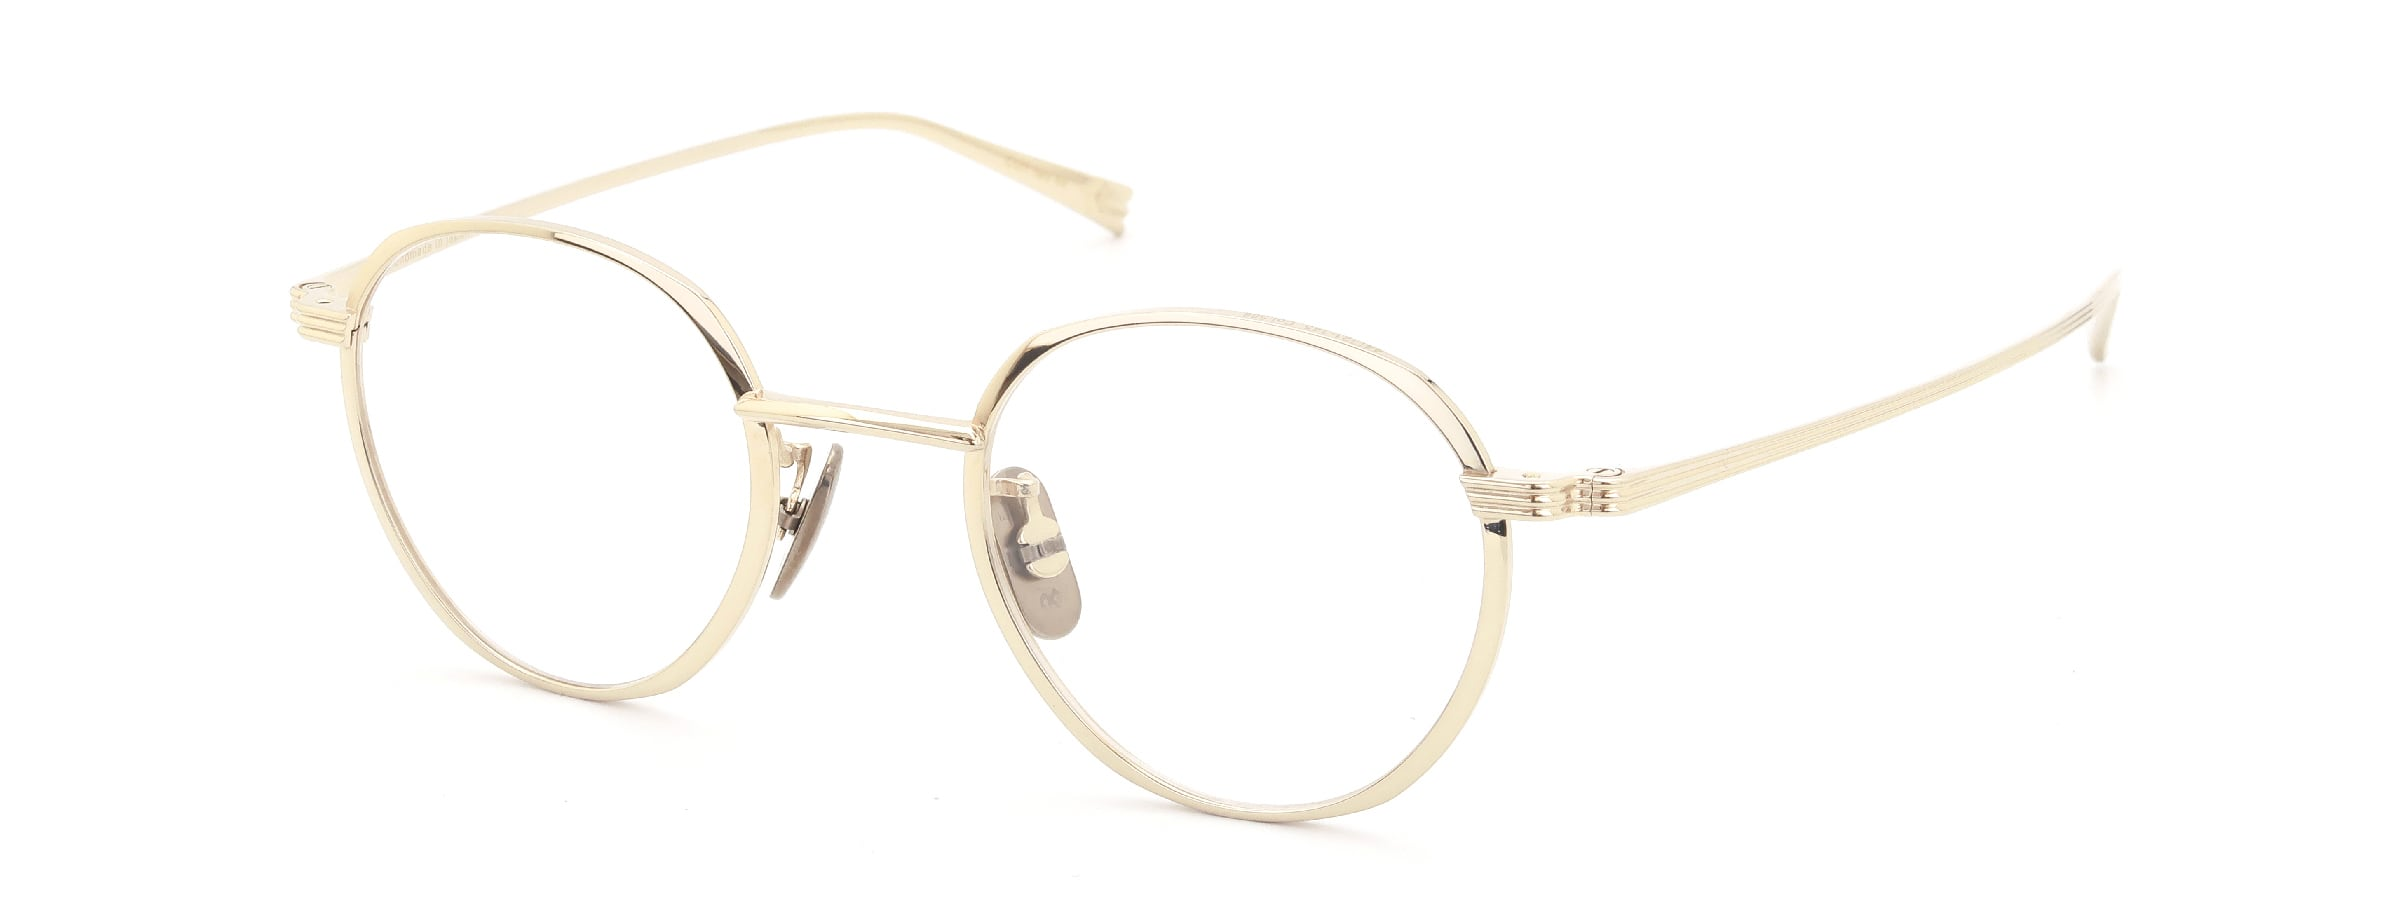 OG × OLIVER GOLDSMITH CUT two 44